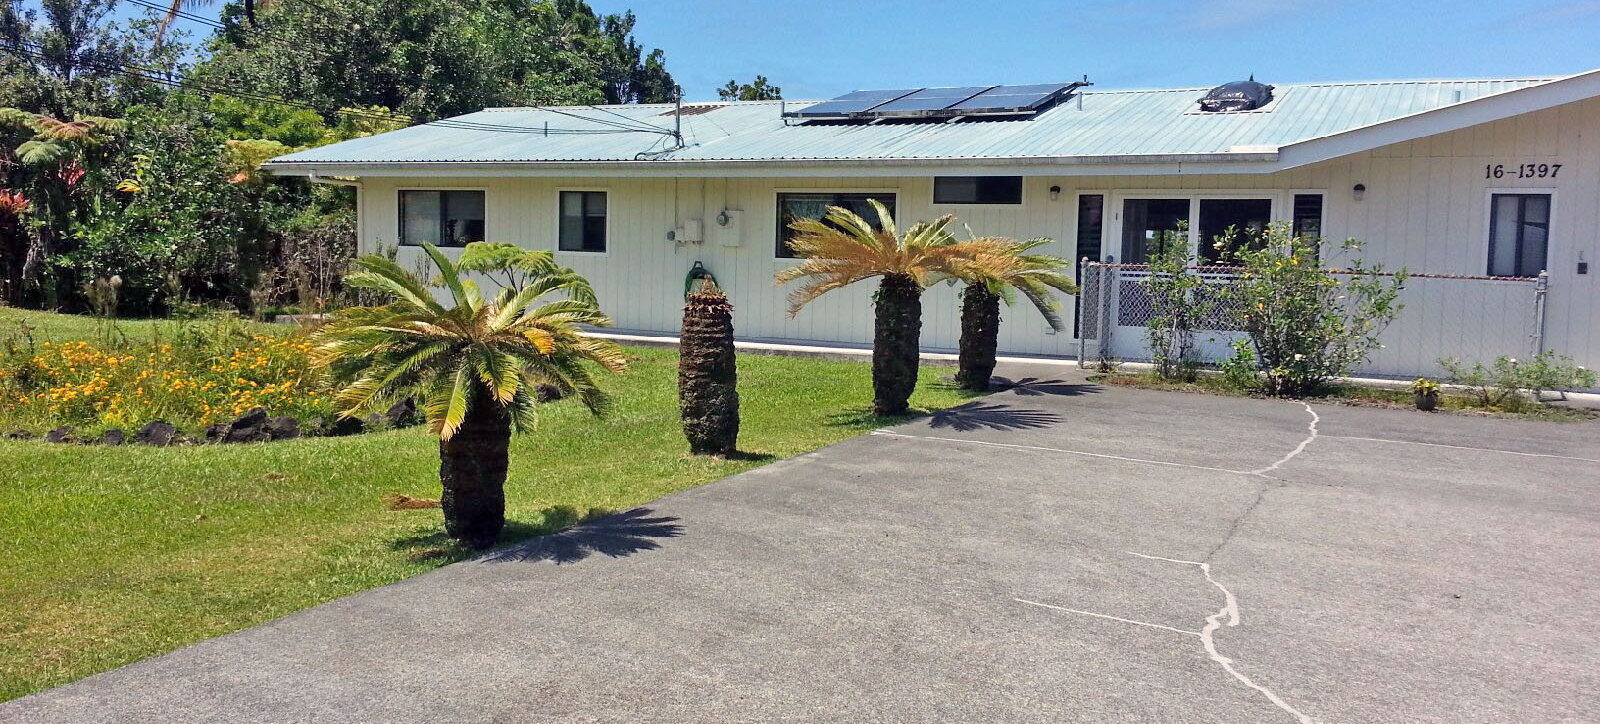 Okano Care Home's front drive and lawn. The lawn features flowers and palms.